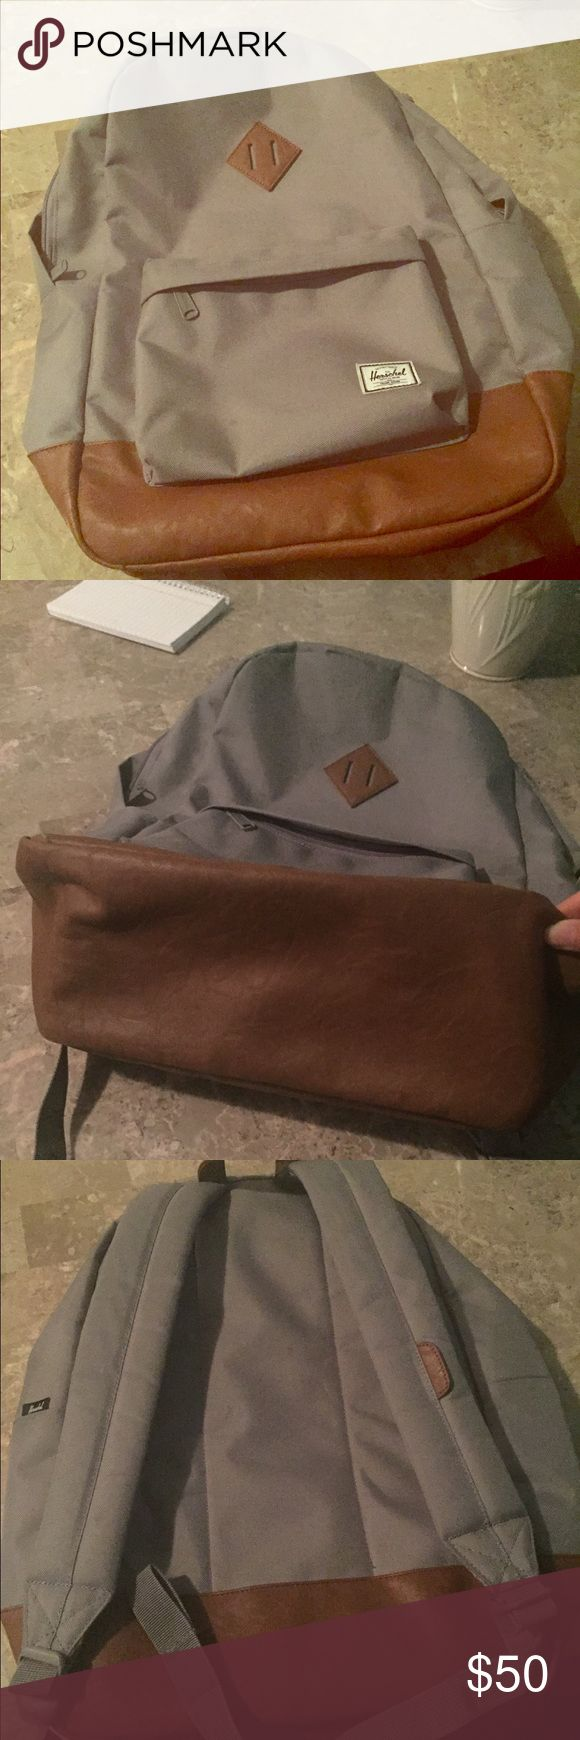 Herschel settlement backpack Like new! I bought this and used for about 3 months until i got a smaller backpack for work. Its in excellent condition, no rips or tears. Offers welcomed!! Herschel Supply Company Bags Backpacks